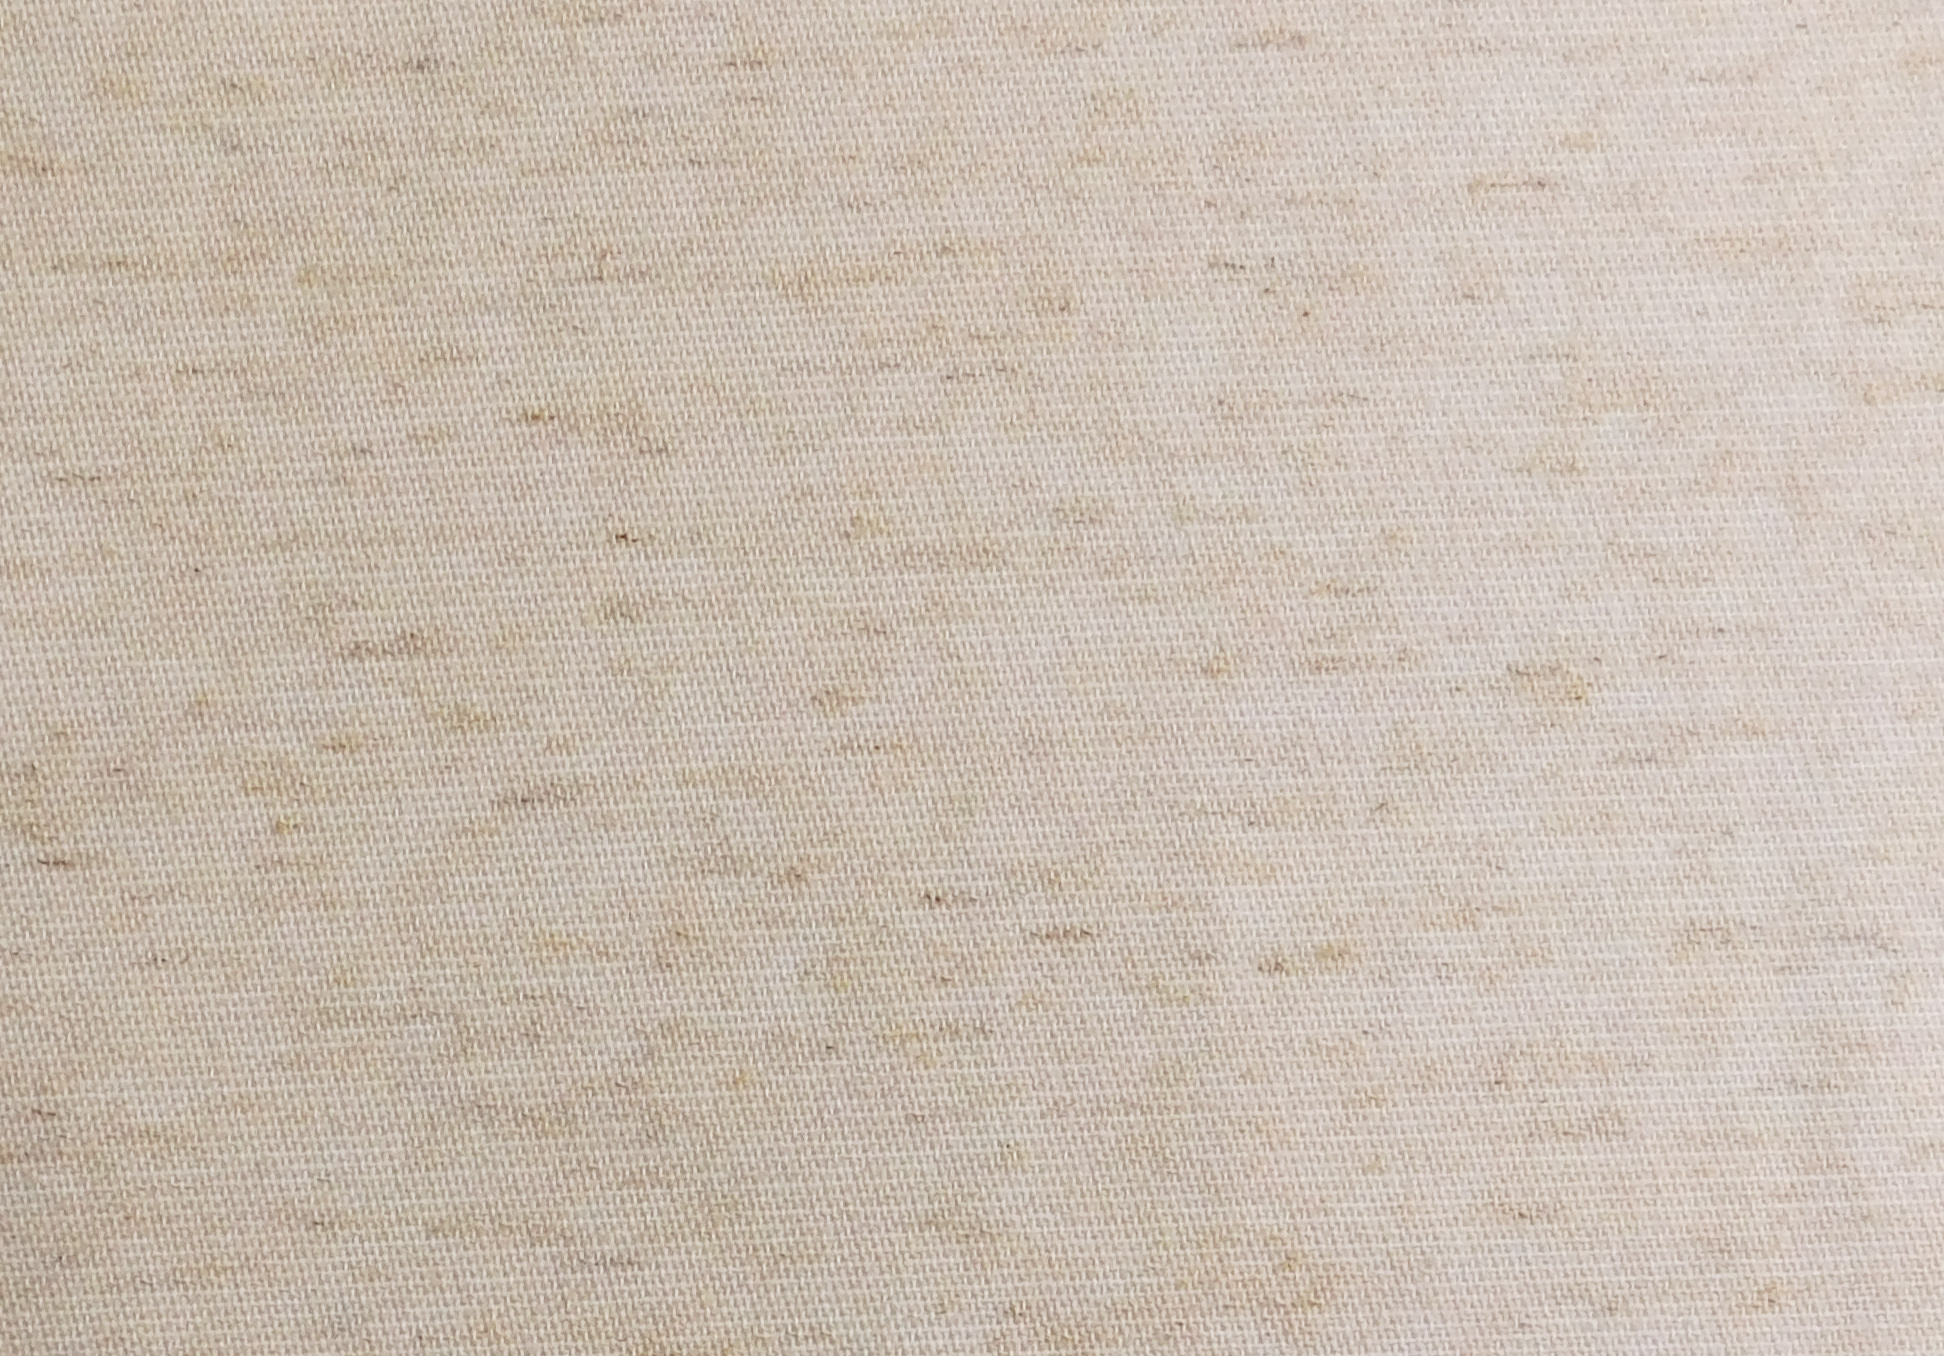 Flax Wholemeal Blind Sample Fabric